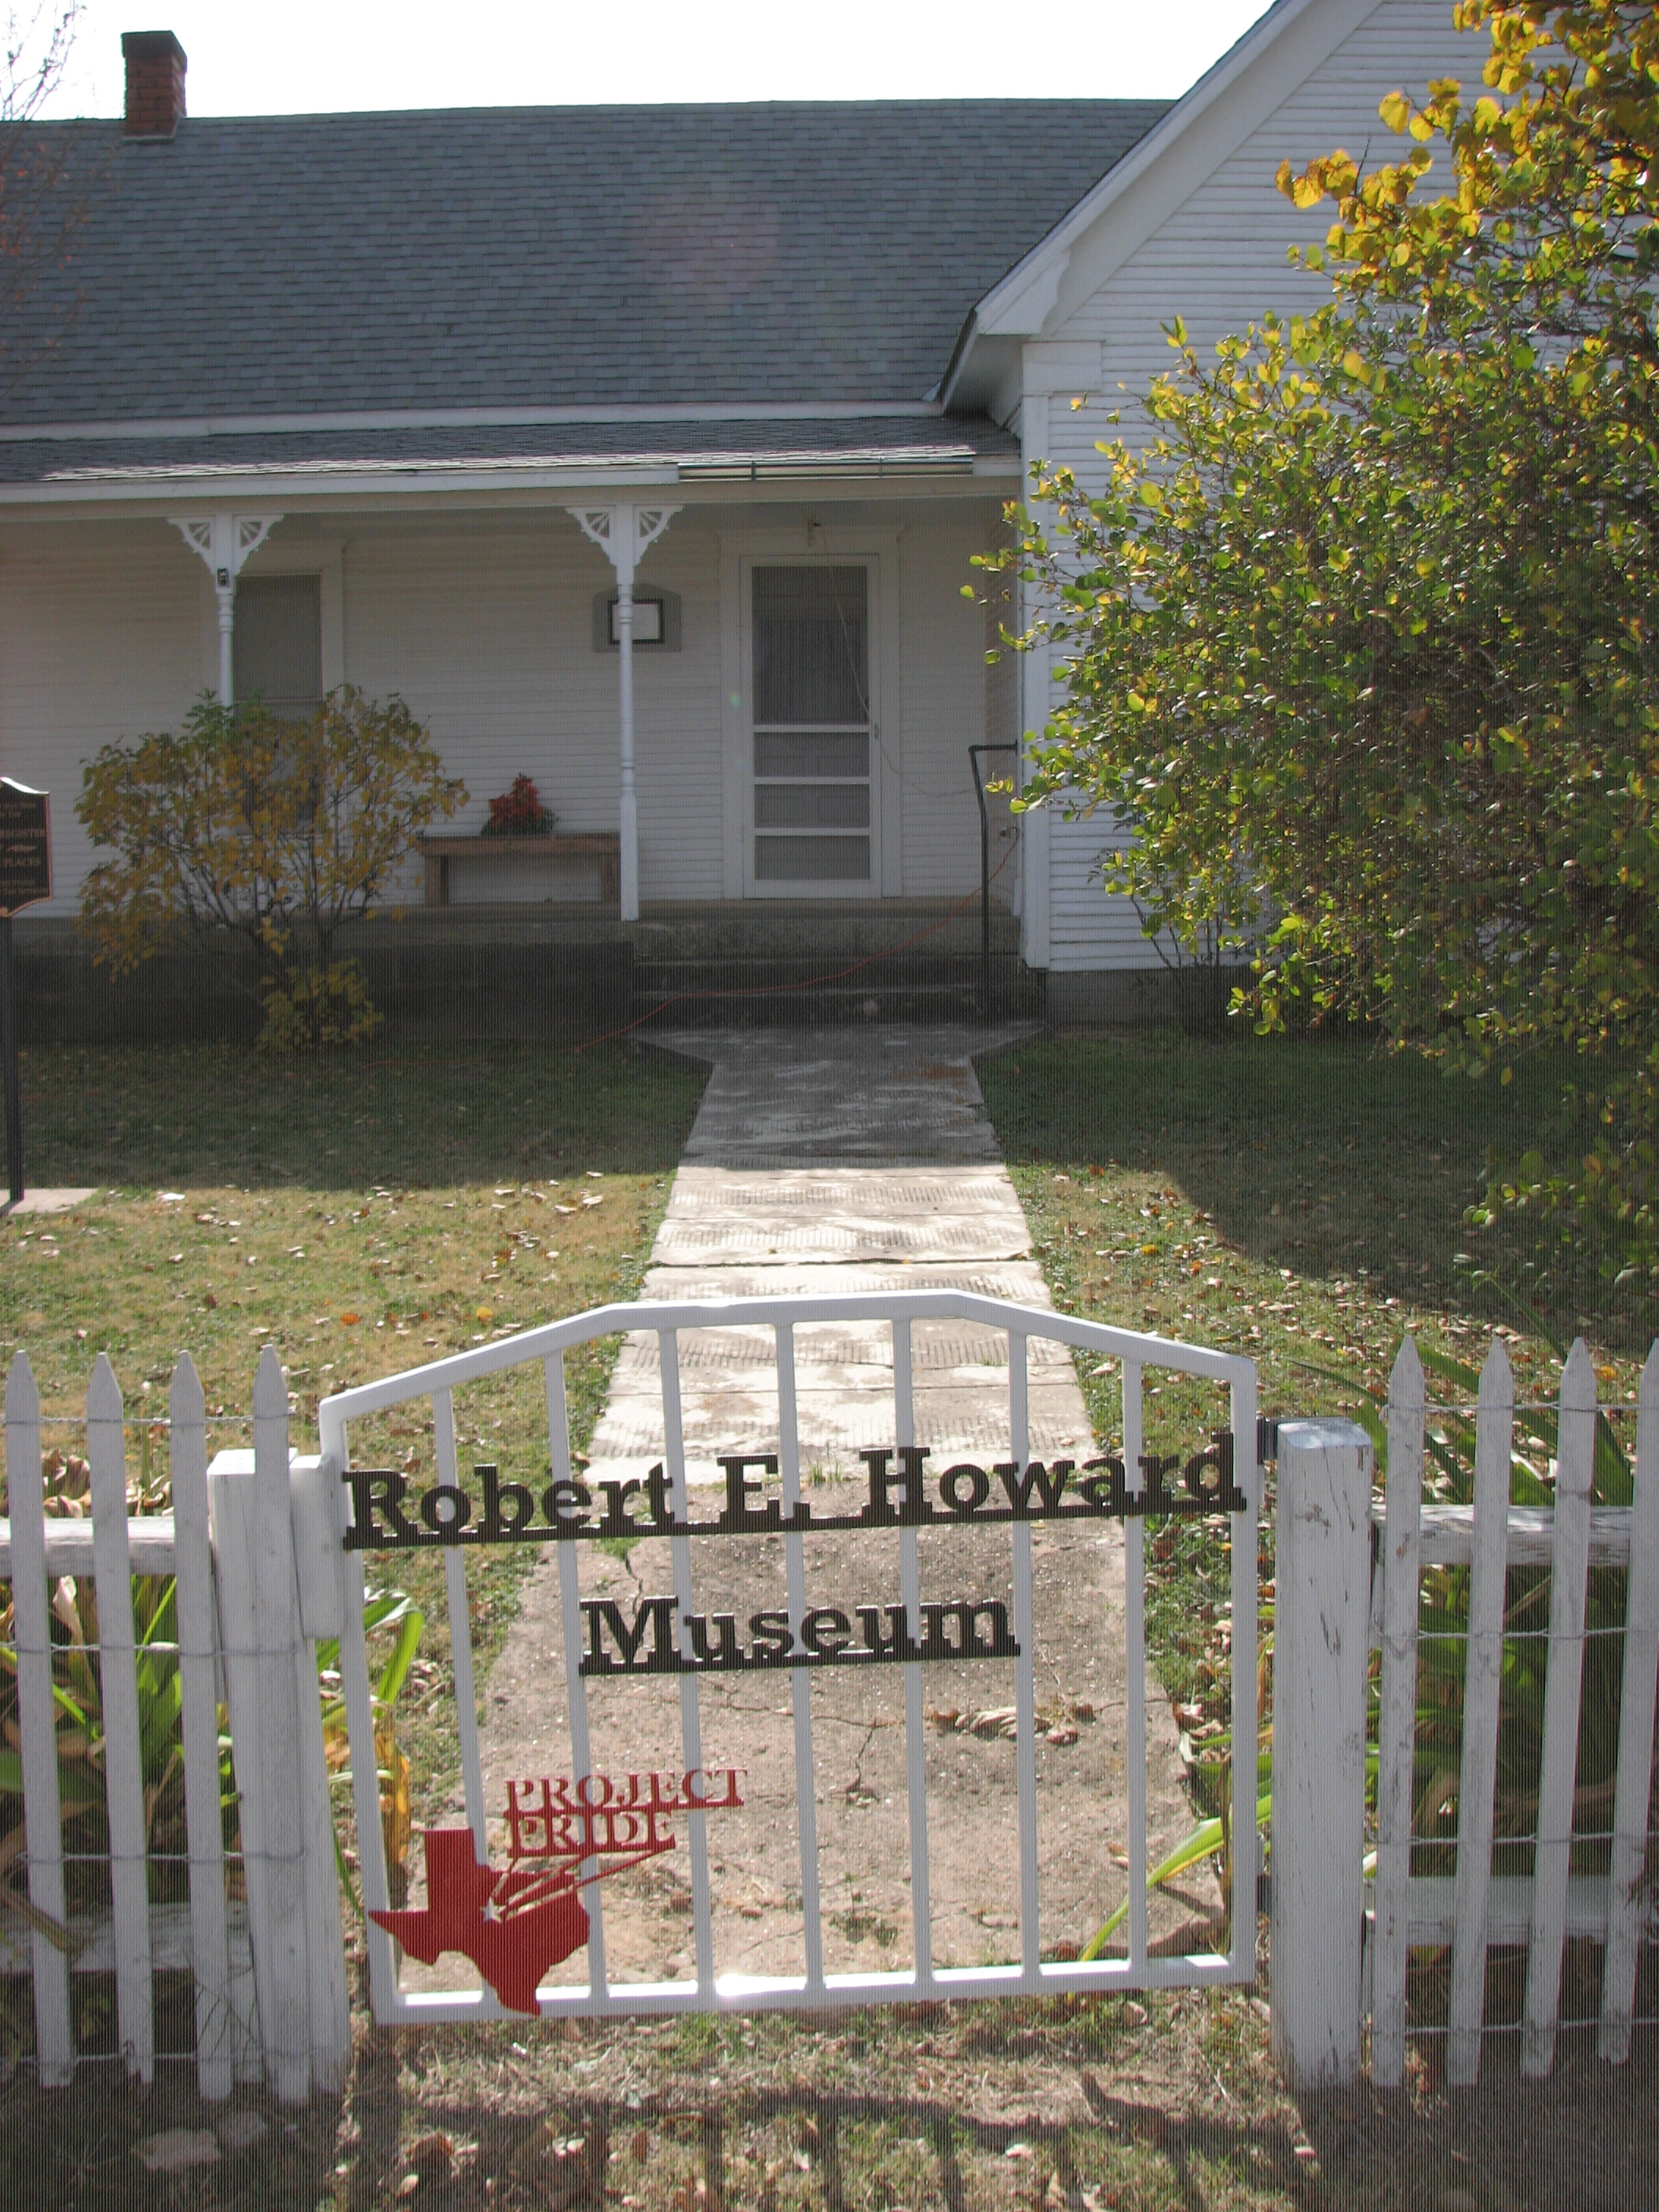 Robert E. Howard Museum